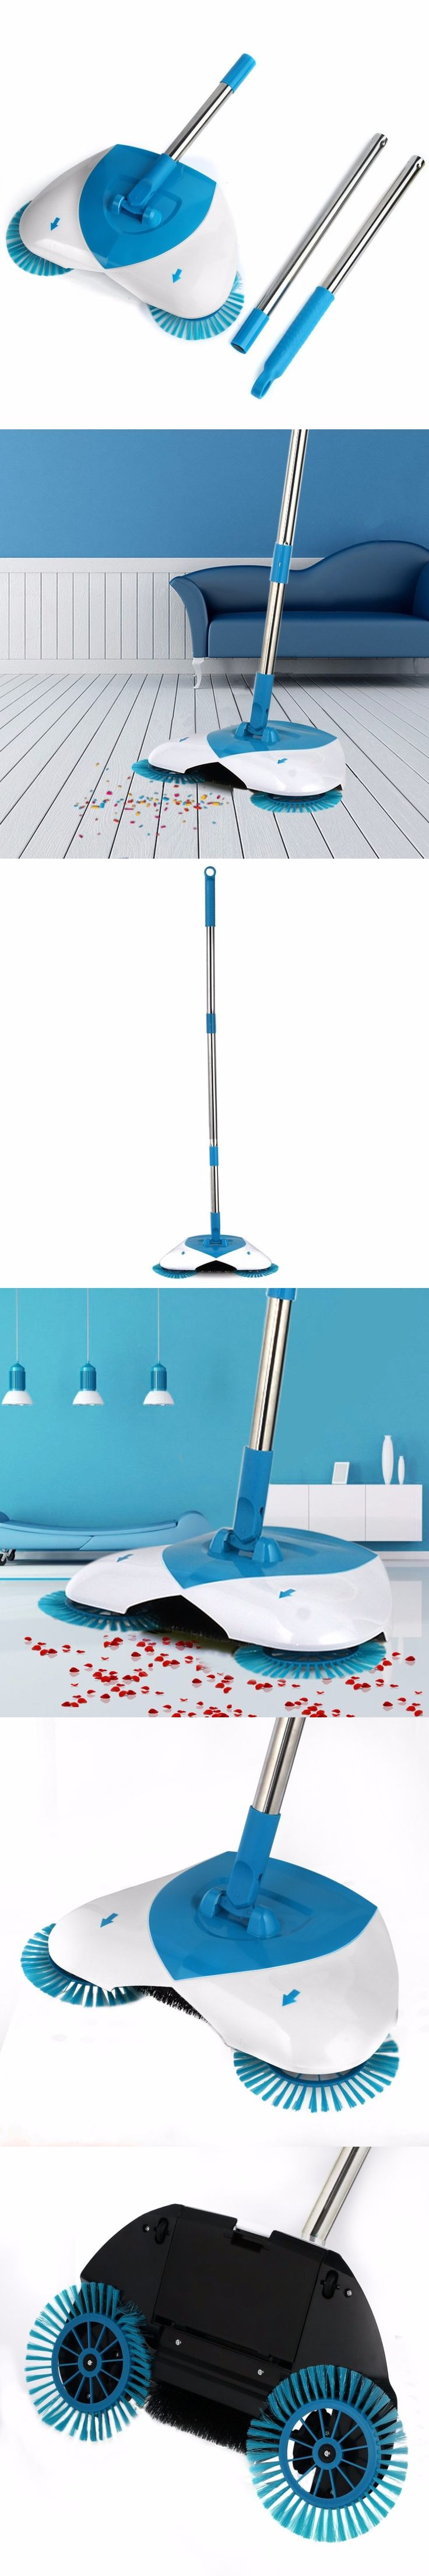 Spin Hand Push Broom Sweeper Household Dust Collector Floor Surface Cleaning Mop Adjustable Convenient Sweeping Supply Hot Sale